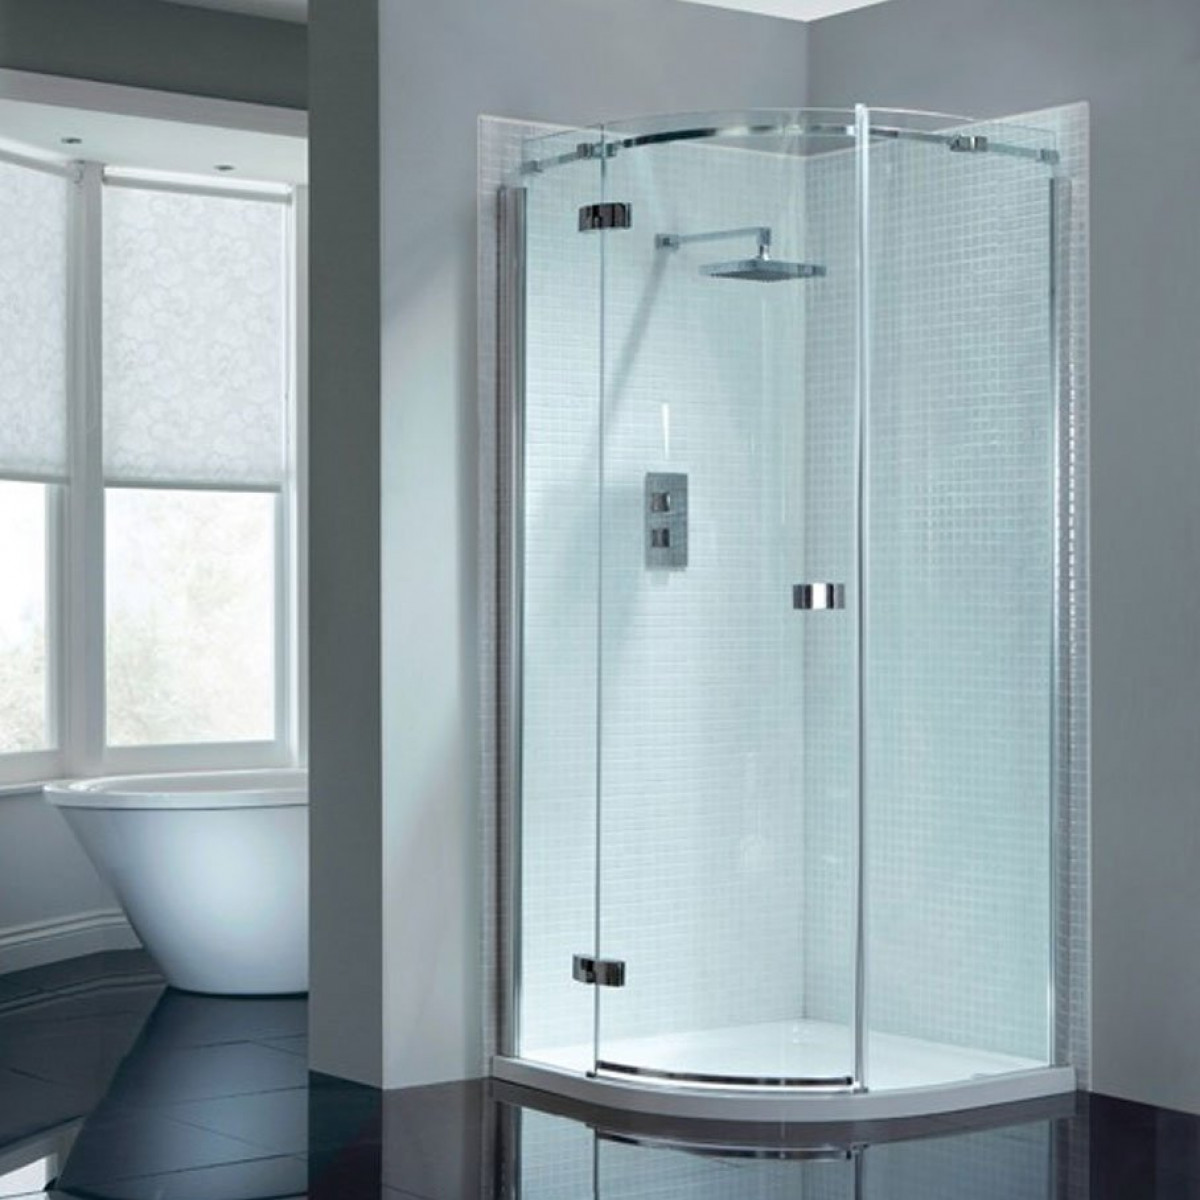 April Prestige2 Frameless Single Door Quadrant Shower